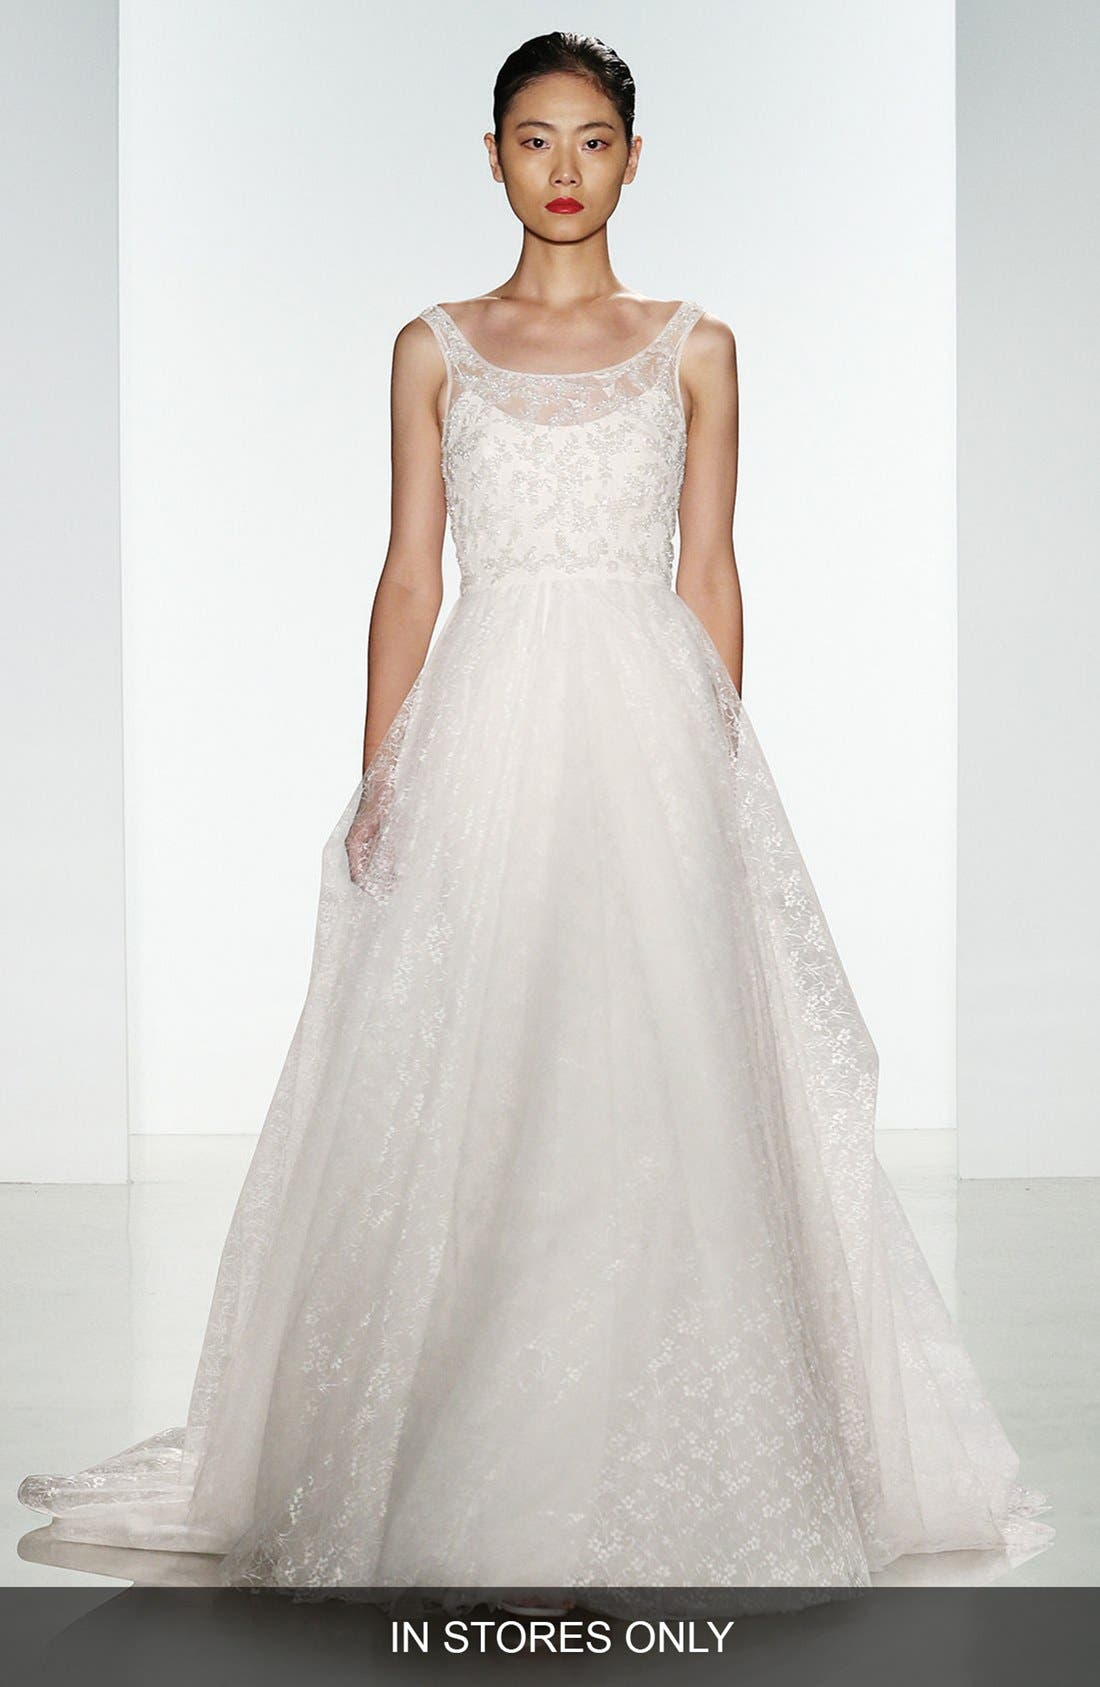 Claire Beaded Chantilly Lace & Floral Tulle Ballgown,                         Main,                         color, 900